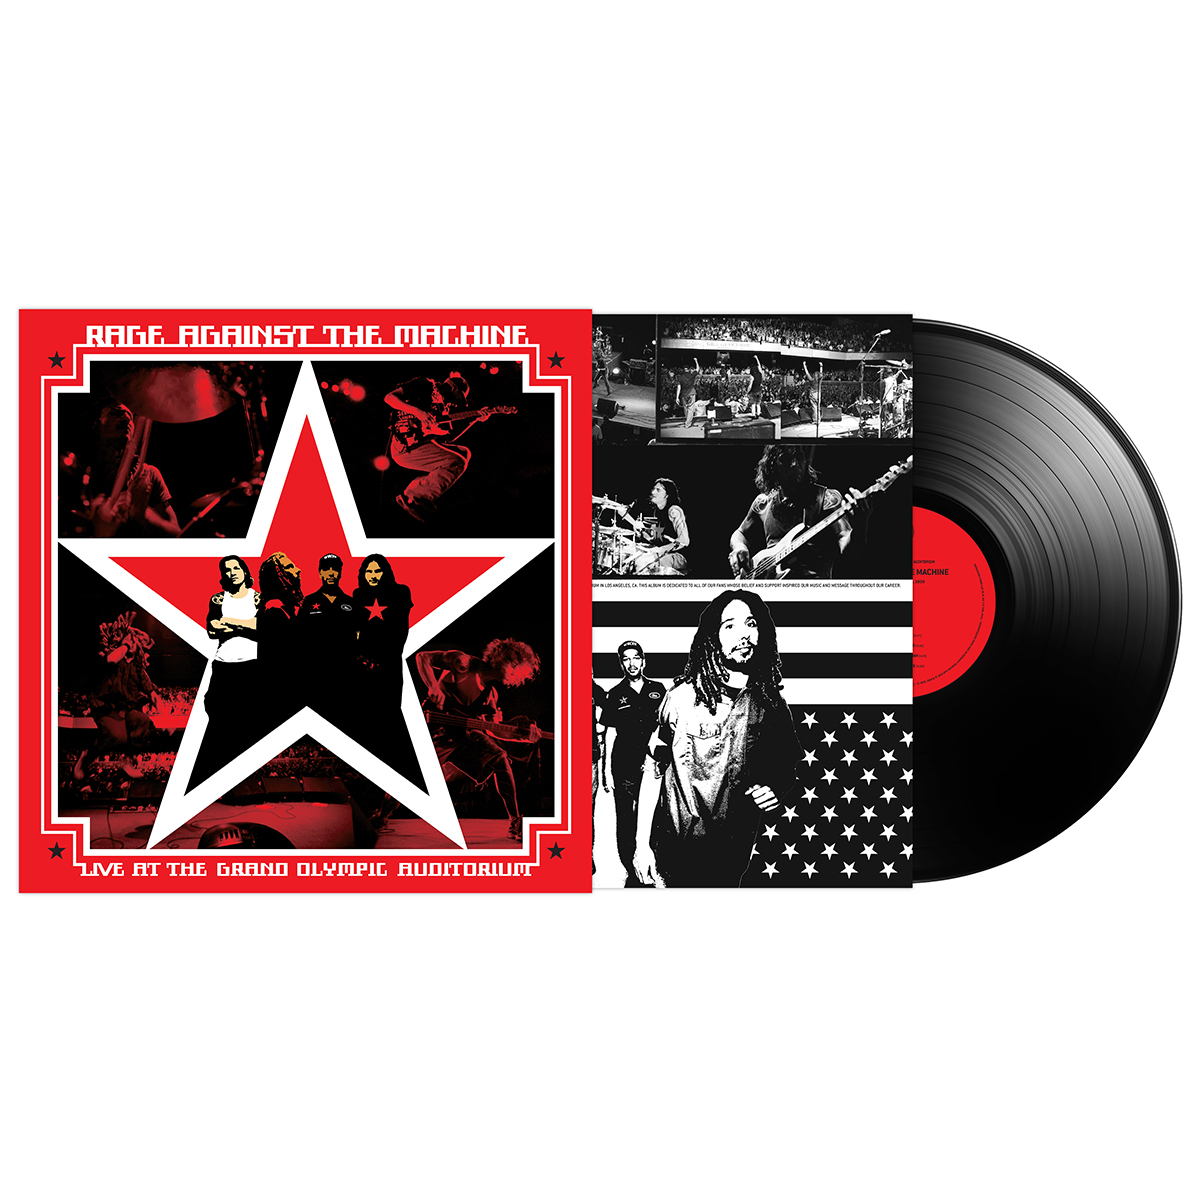 Live At the Grand Auditorium – Double Vinyl - Rage Against the Machine